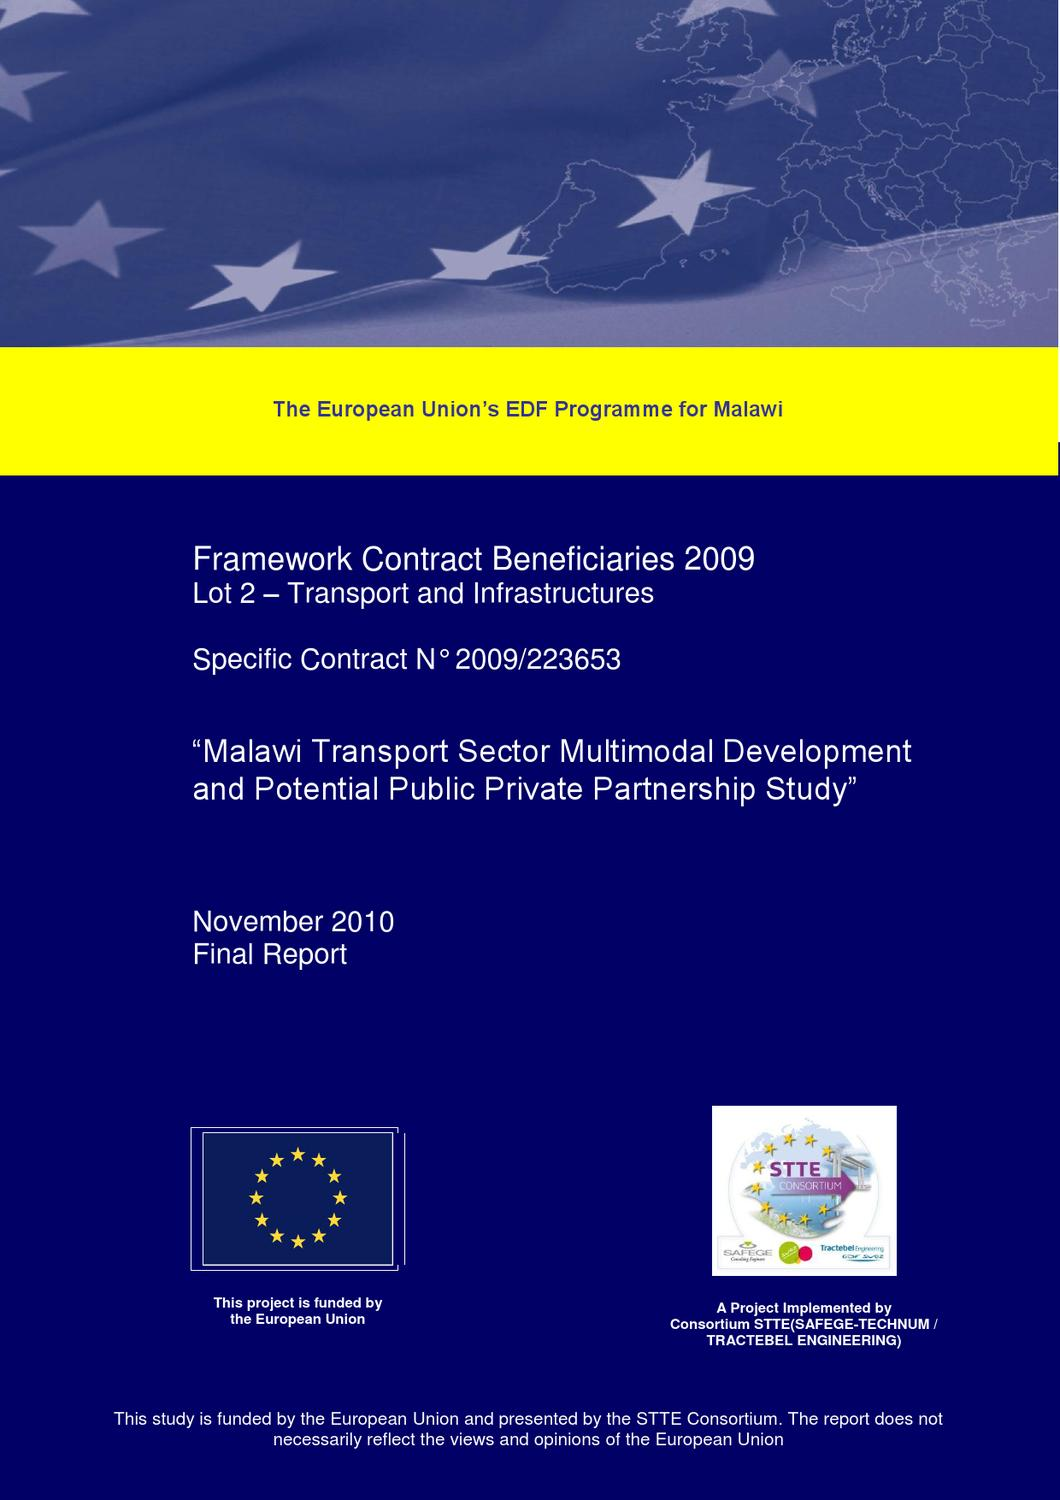 Malawi Transport Sector Multimodal Development And Potential Public Stamford Generator 1250 Kva Wiring Diagram Private Partnership Study By Olivier Crouzier Issuu